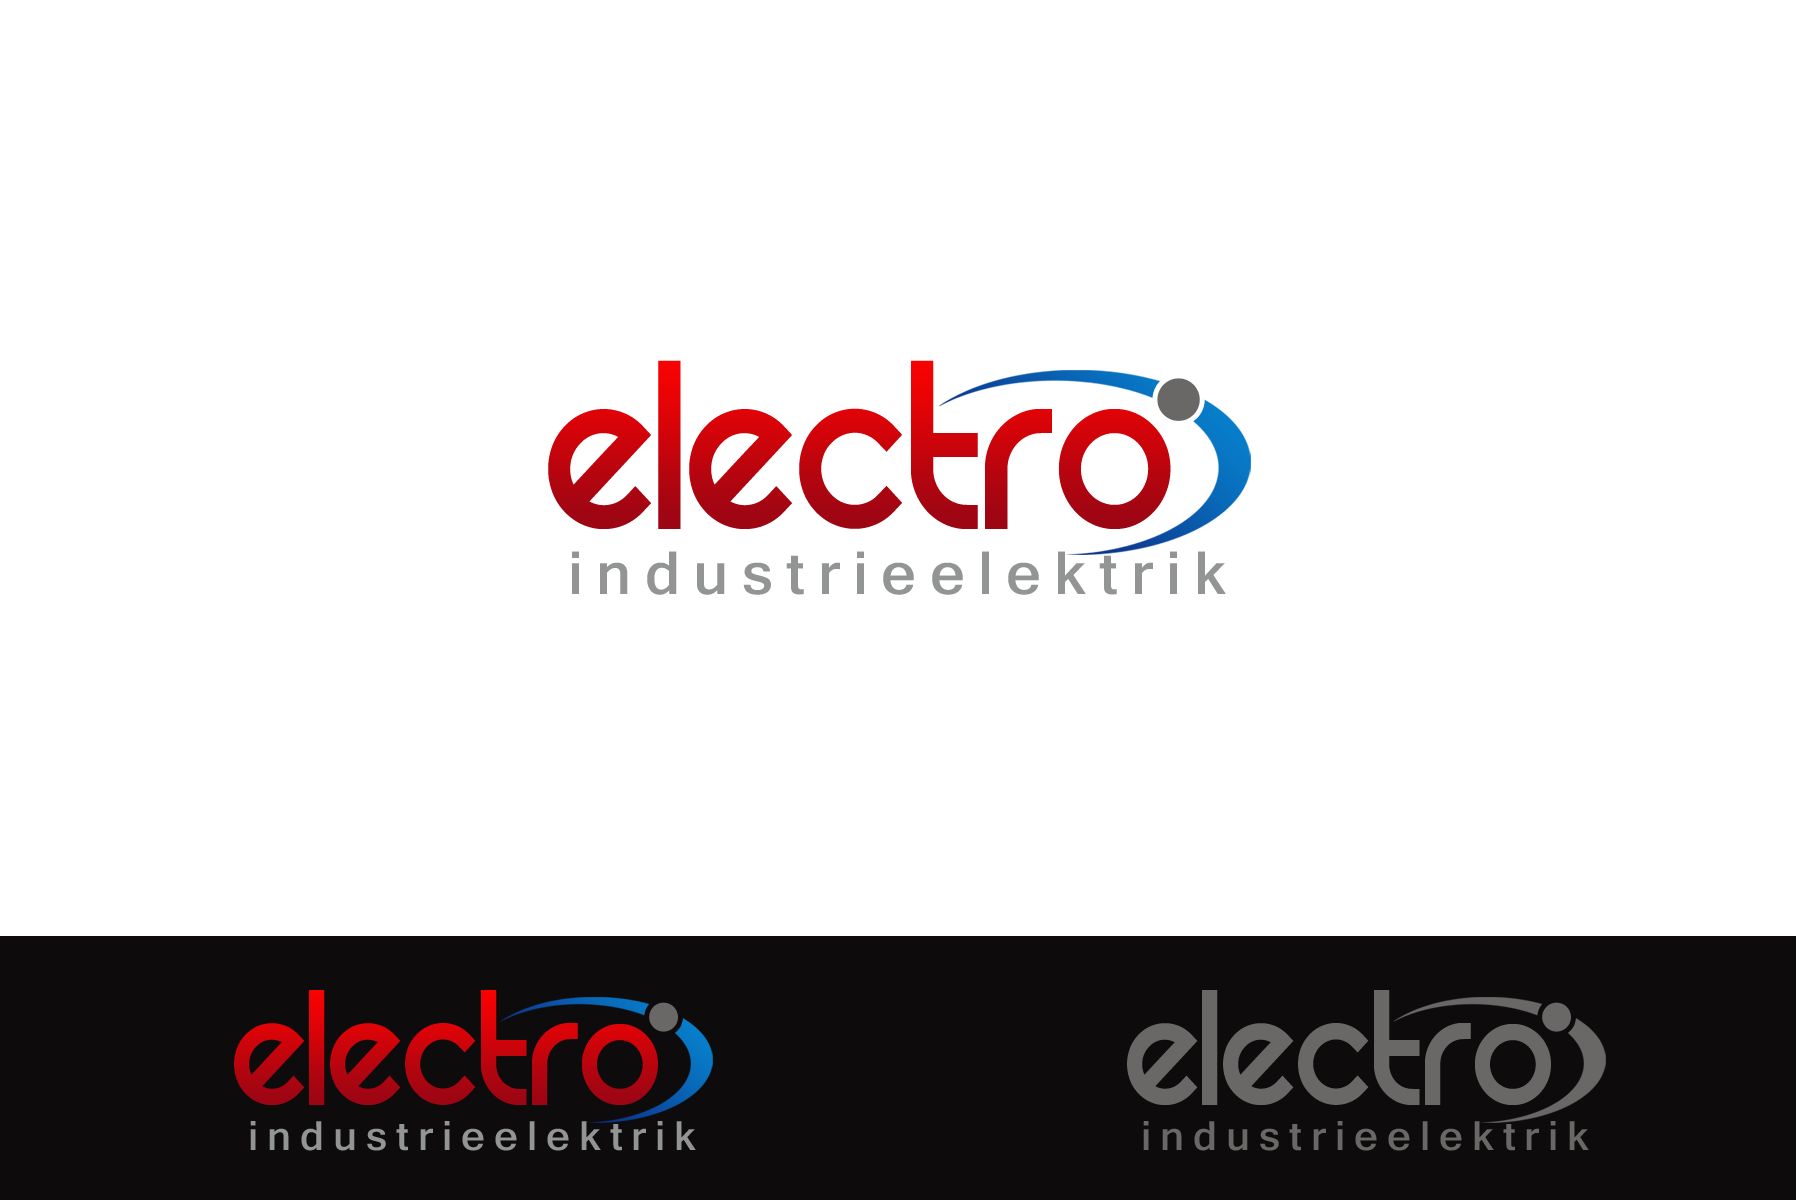 Logo Design by golden-hand - Entry No. 60 in the Logo Design Contest Unique Logo Design Wanted for Electro Industrieelektrik.